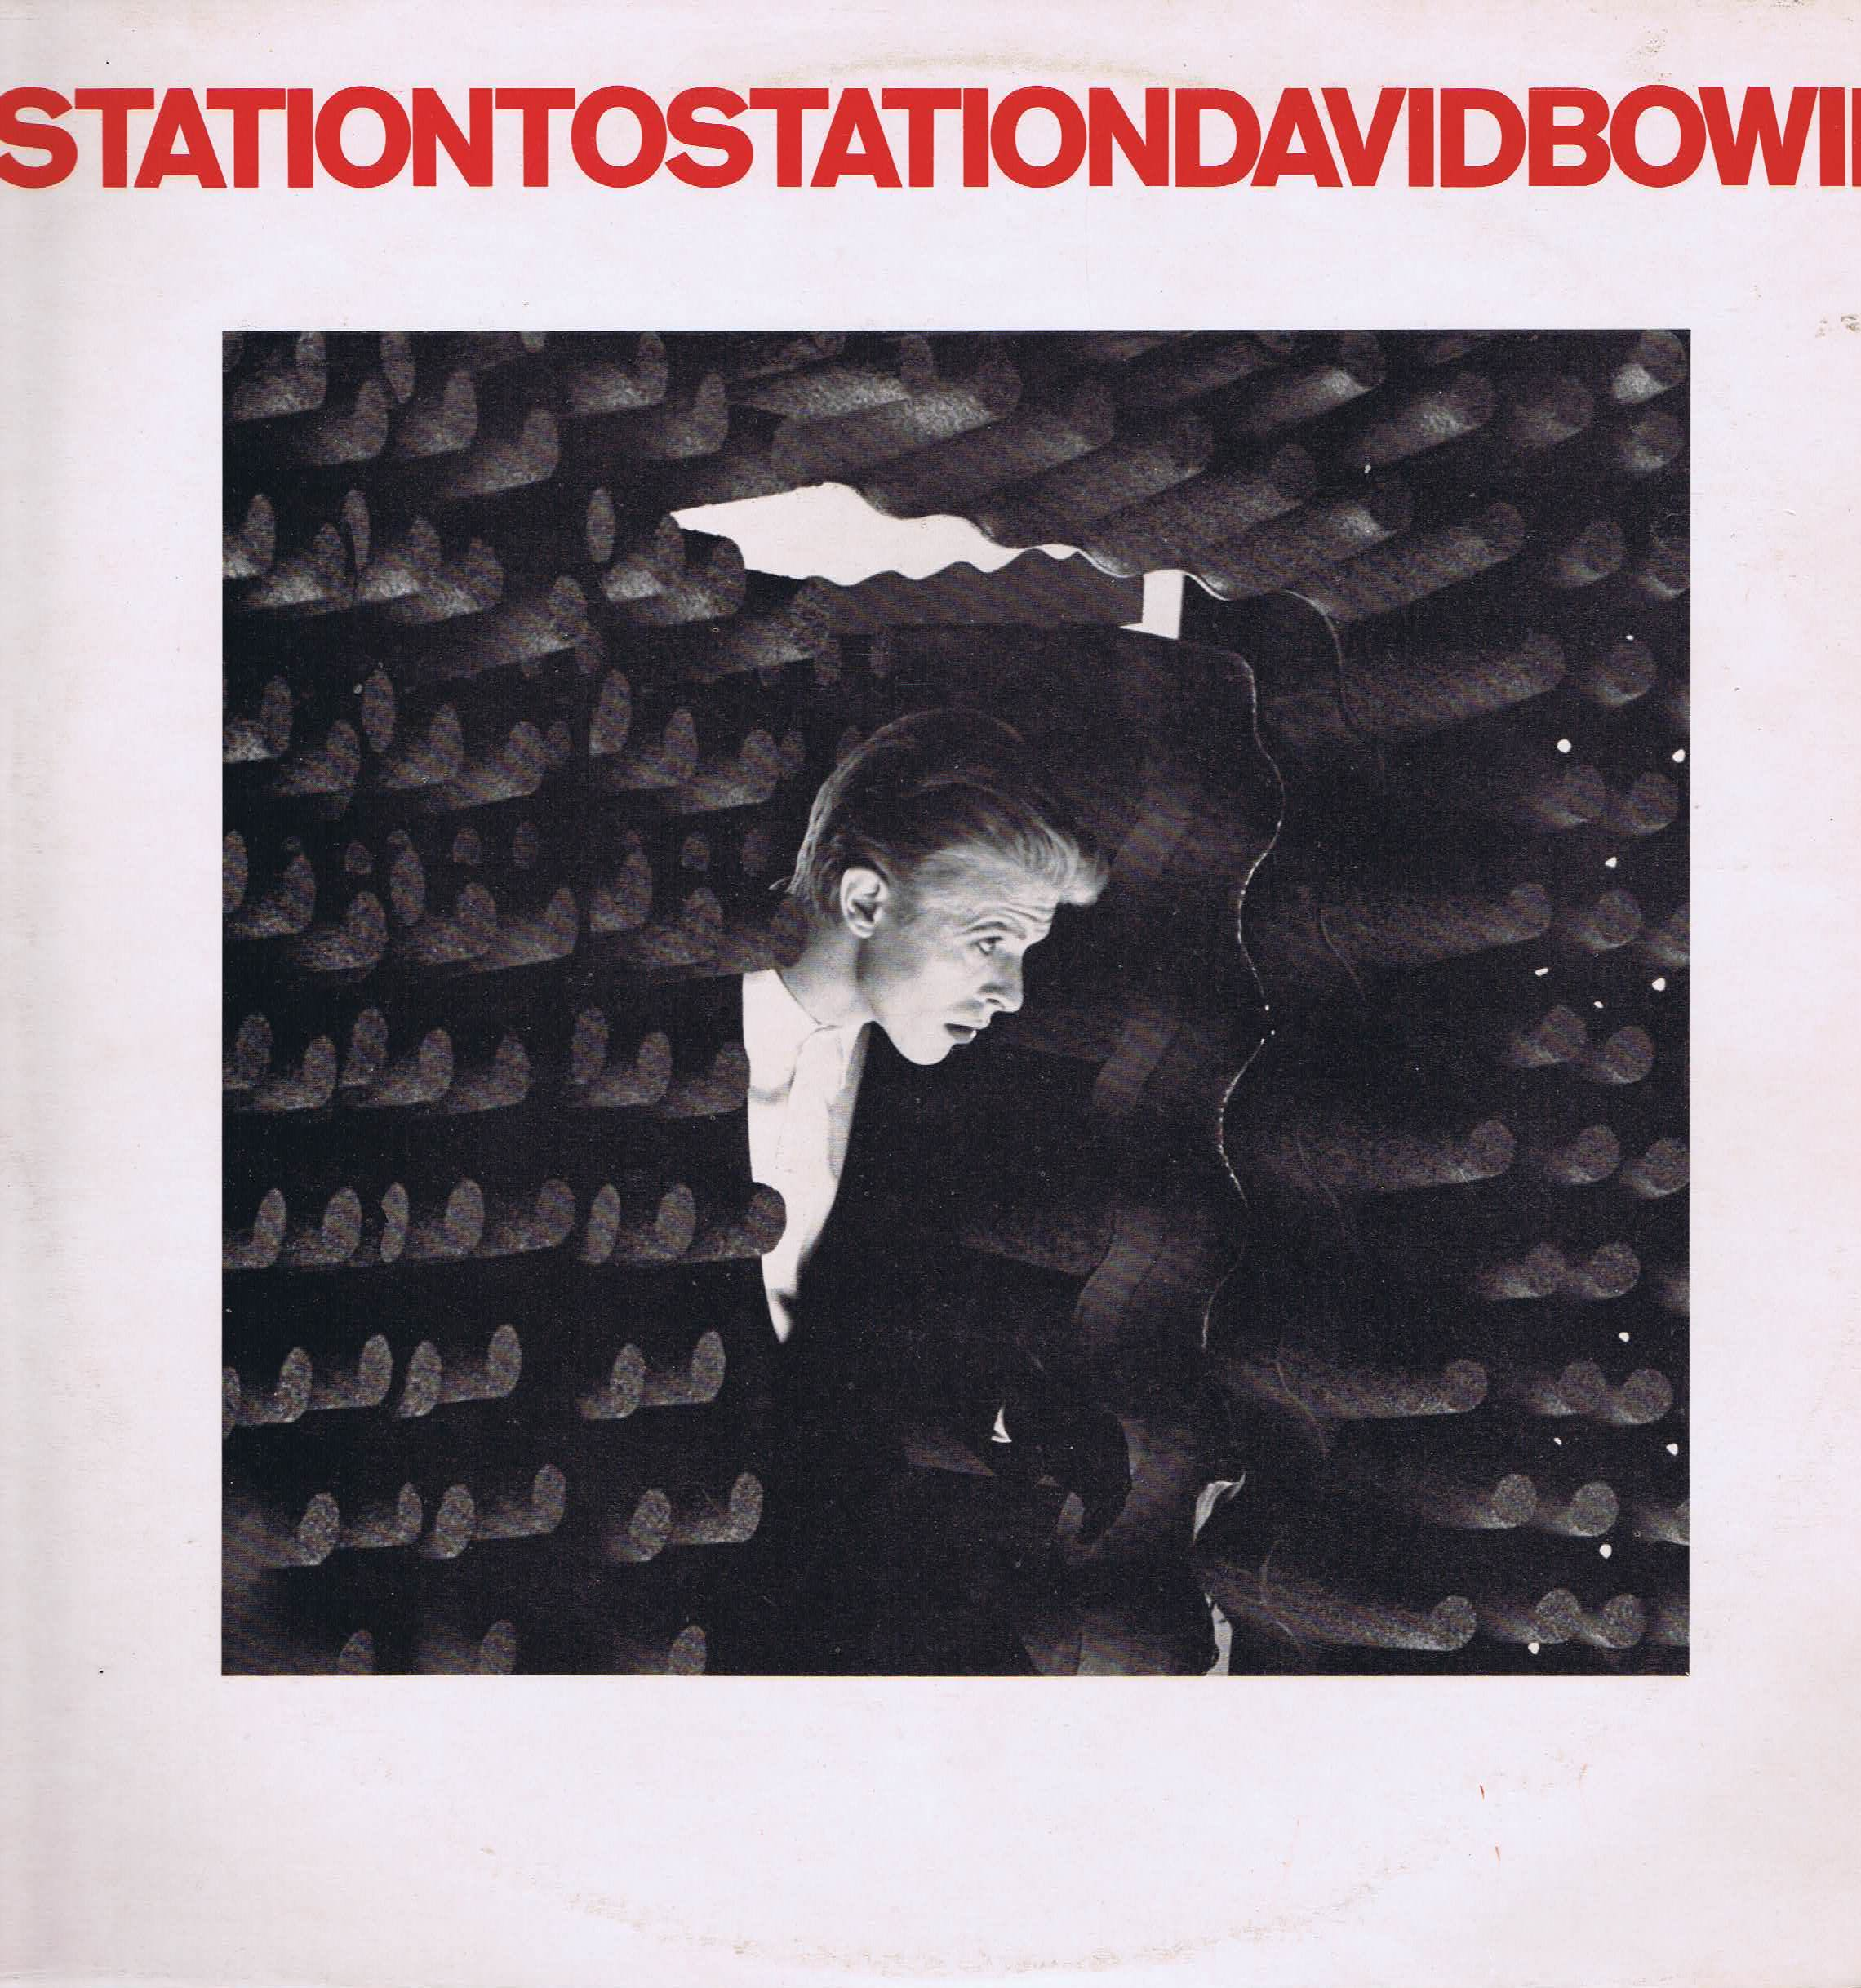 David Bowie – Station To Station - RCA APLI-1327 - A-1E/B-1E with 1976 purchase receipt